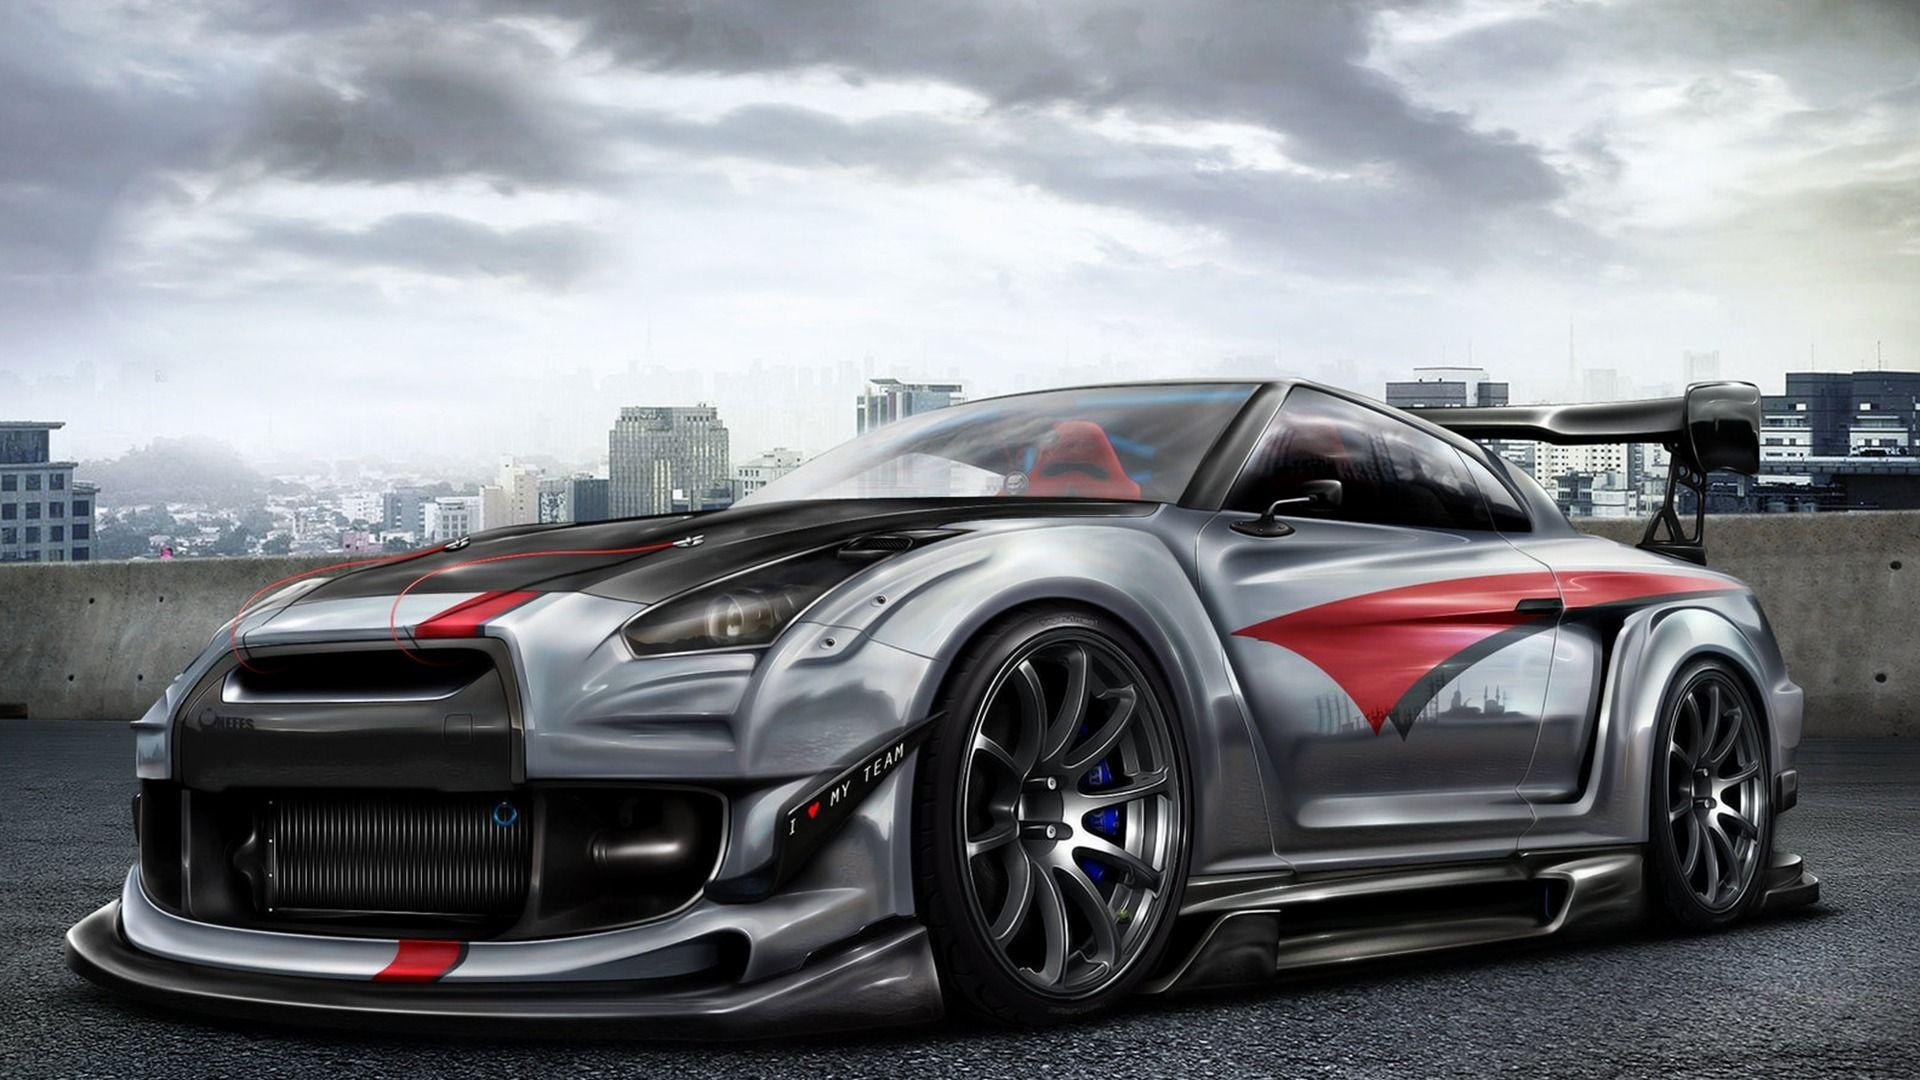 nissan gtr r35 wallpapers wallpaper cave. Black Bedroom Furniture Sets. Home Design Ideas